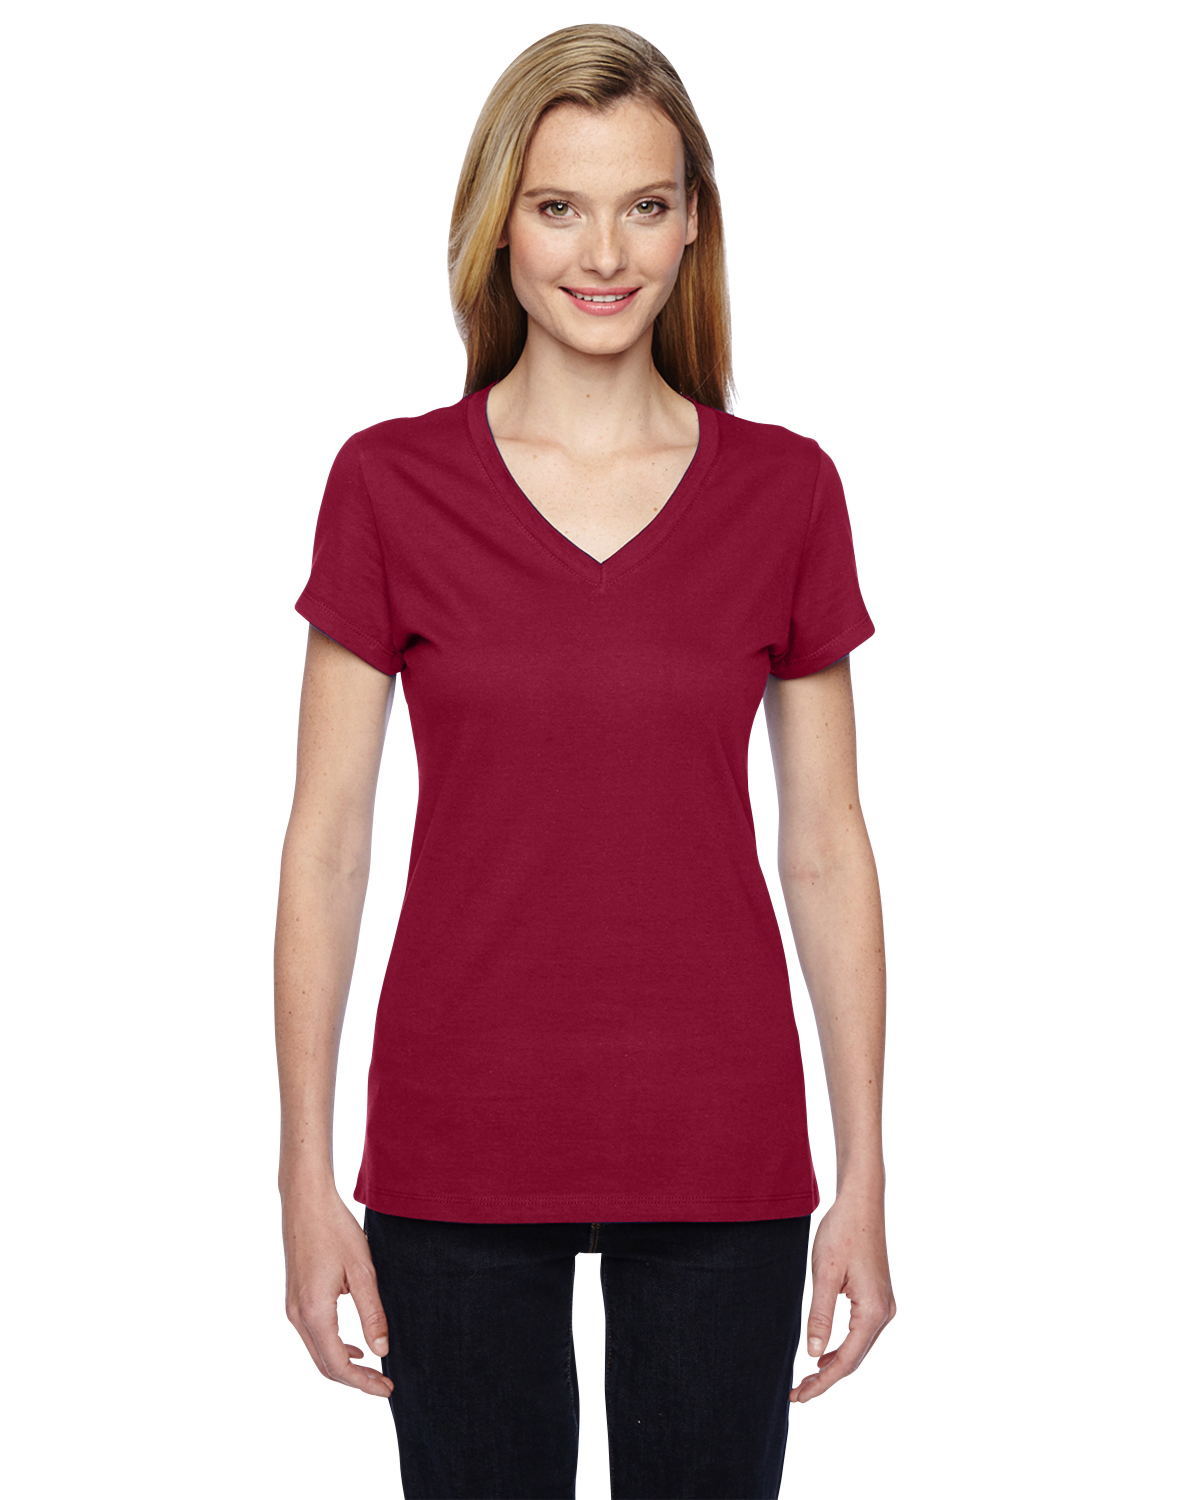 Fruit of the Loom SFJVR - Ladies' 4.7 oz. 100% Sofspun Cotton Jersey Junior V-Neck T-Shirt